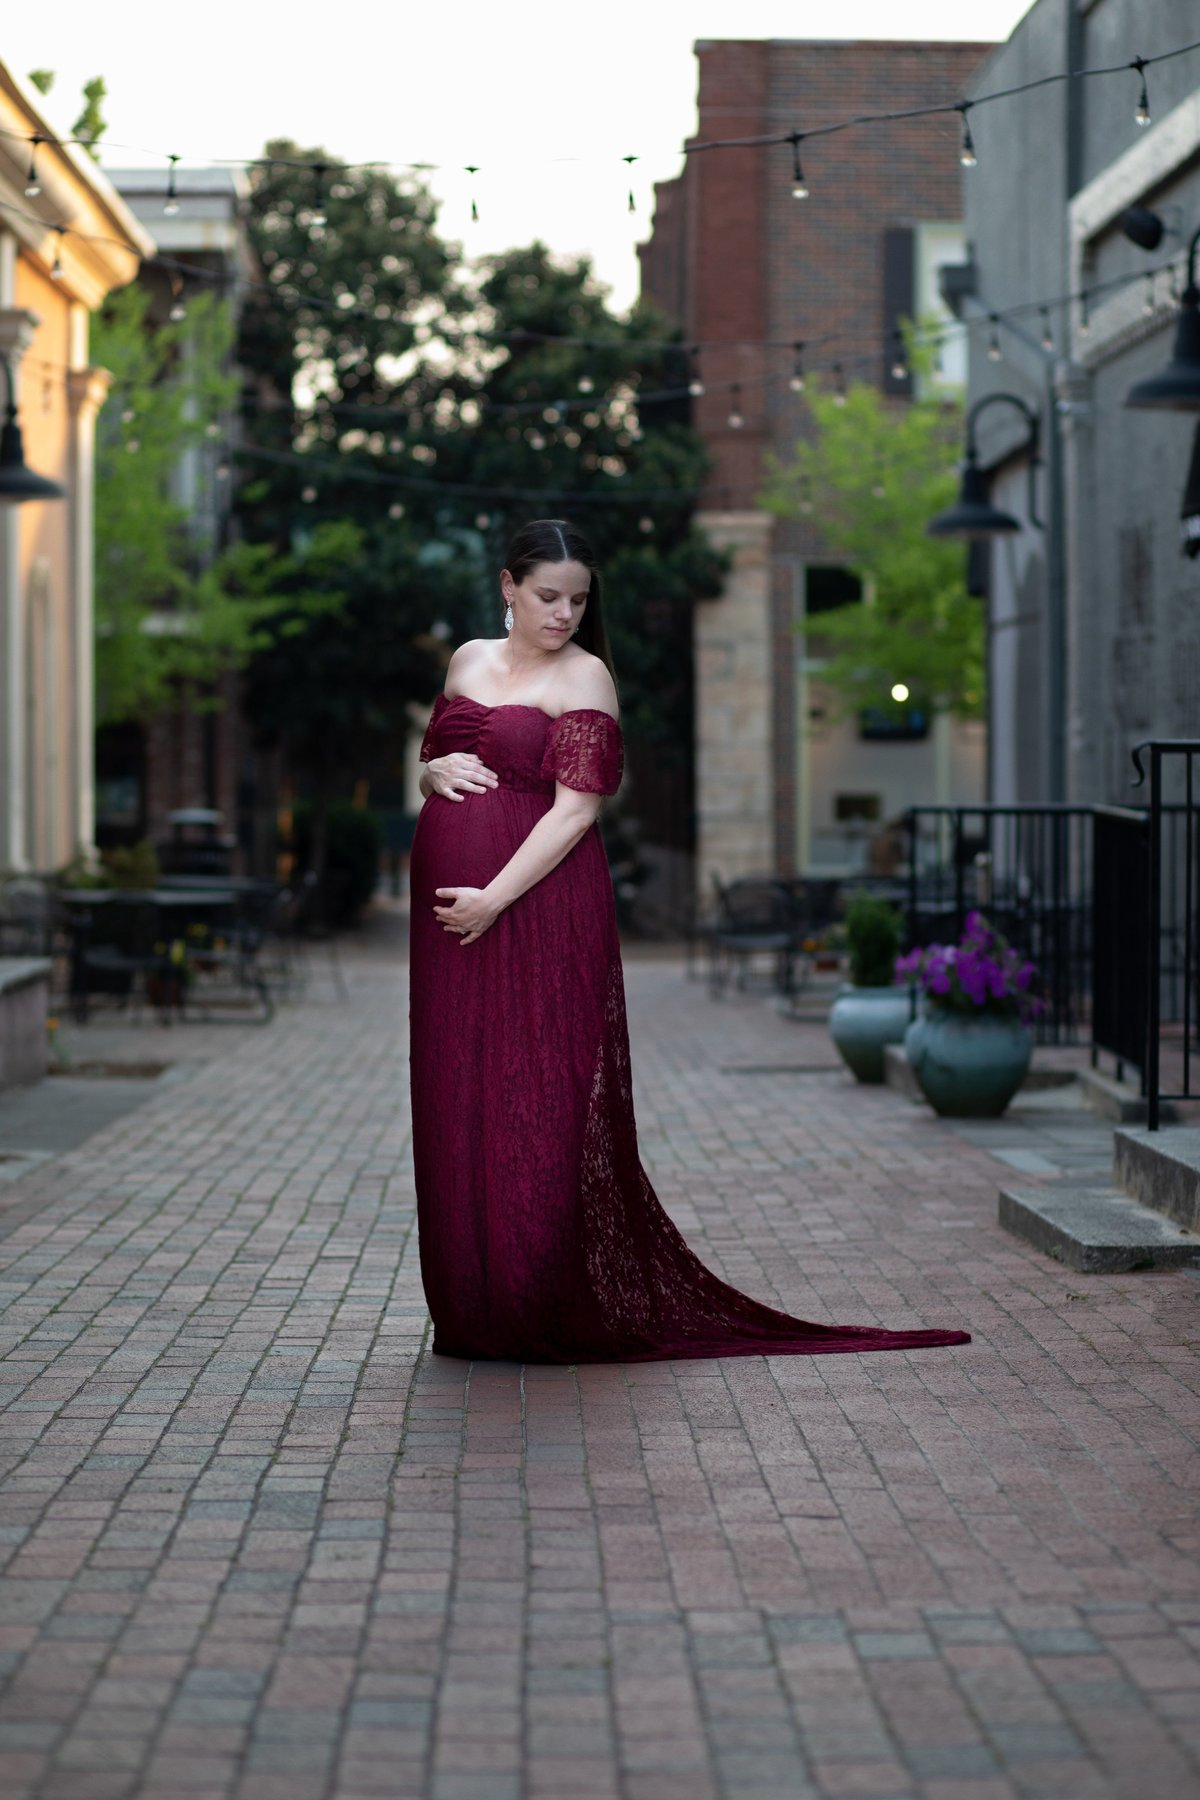 conyers-photographer-focused-life-photography-maternity